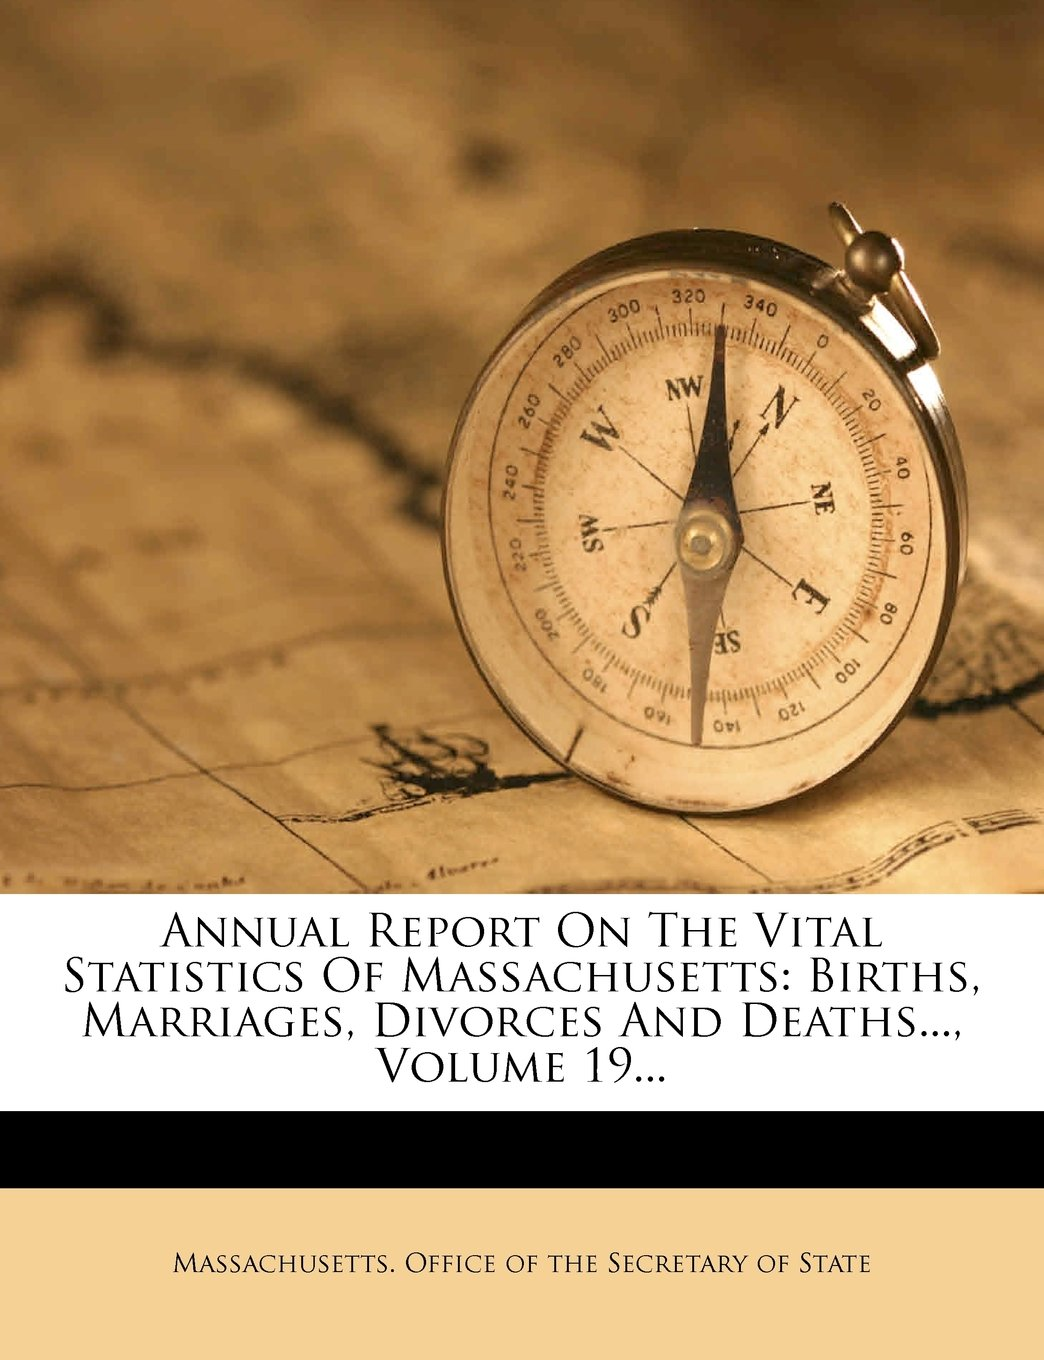 Download Annual Report on the Vital Statistics of Massachusetts: Births, Marriages, Divorces and Deaths..., Volume 19... (Japanese Edition) ebook